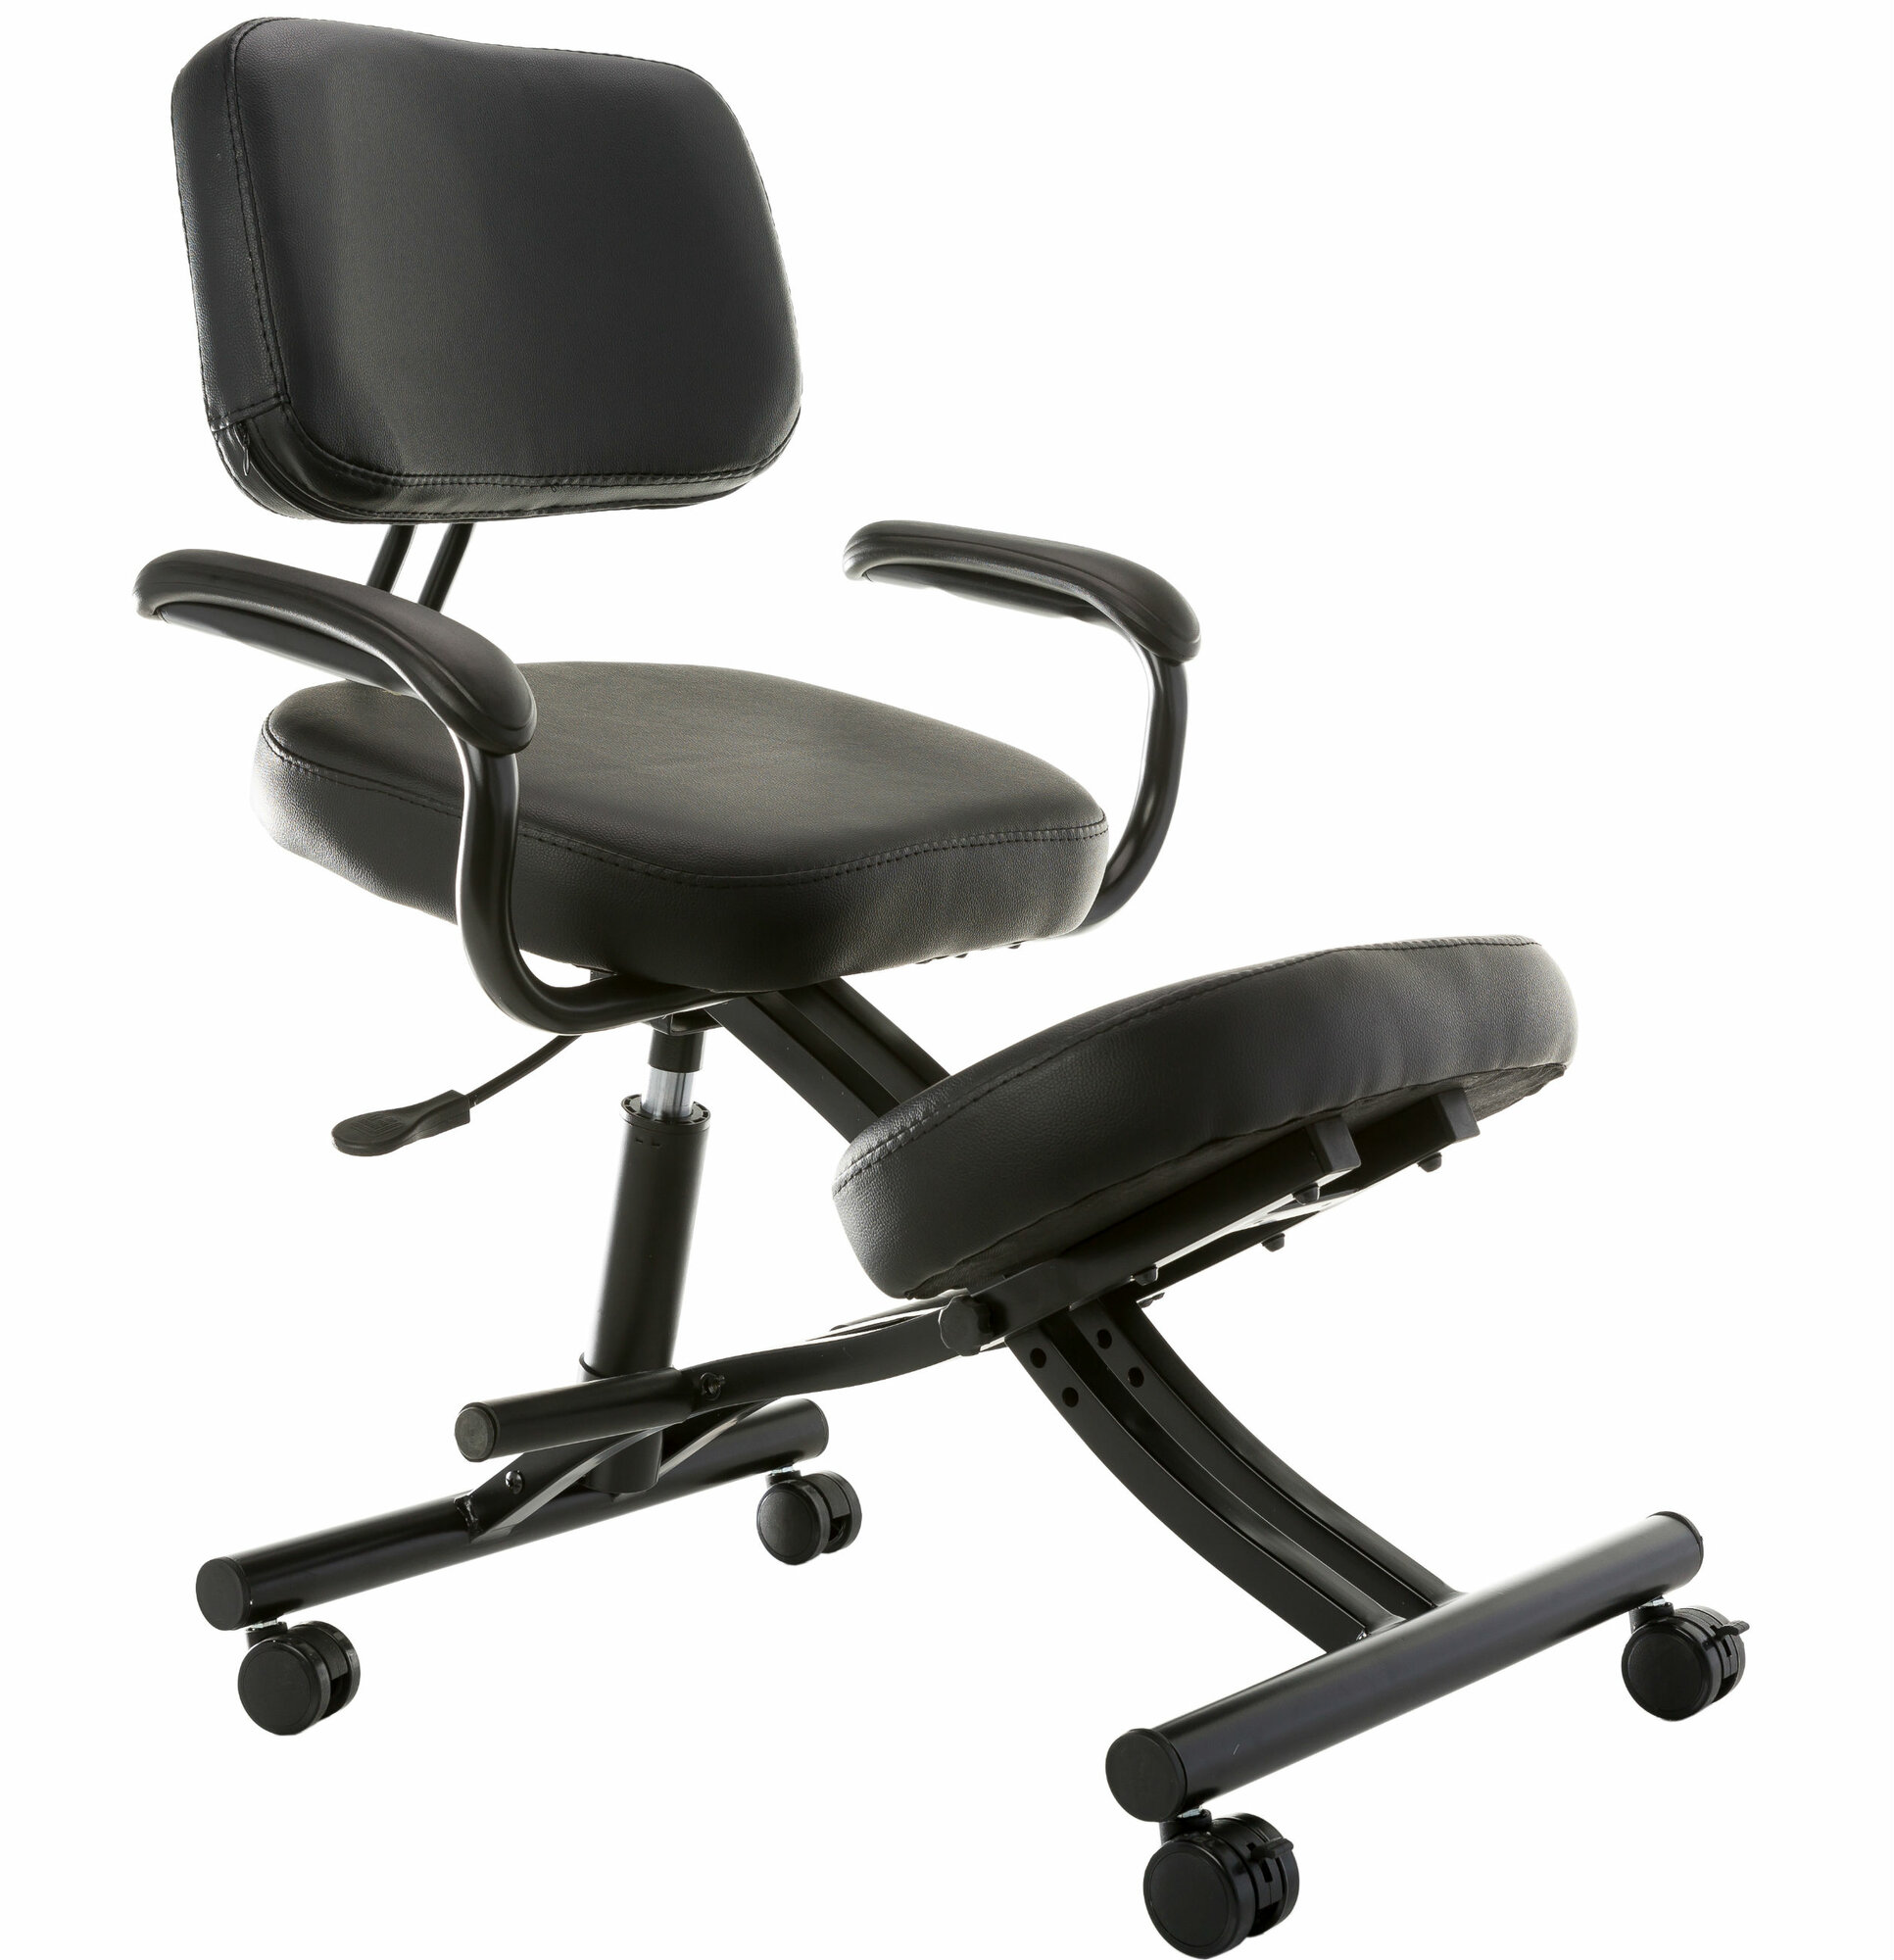 Sierra Comfort Ergonomic Low Back Kneeling Chair